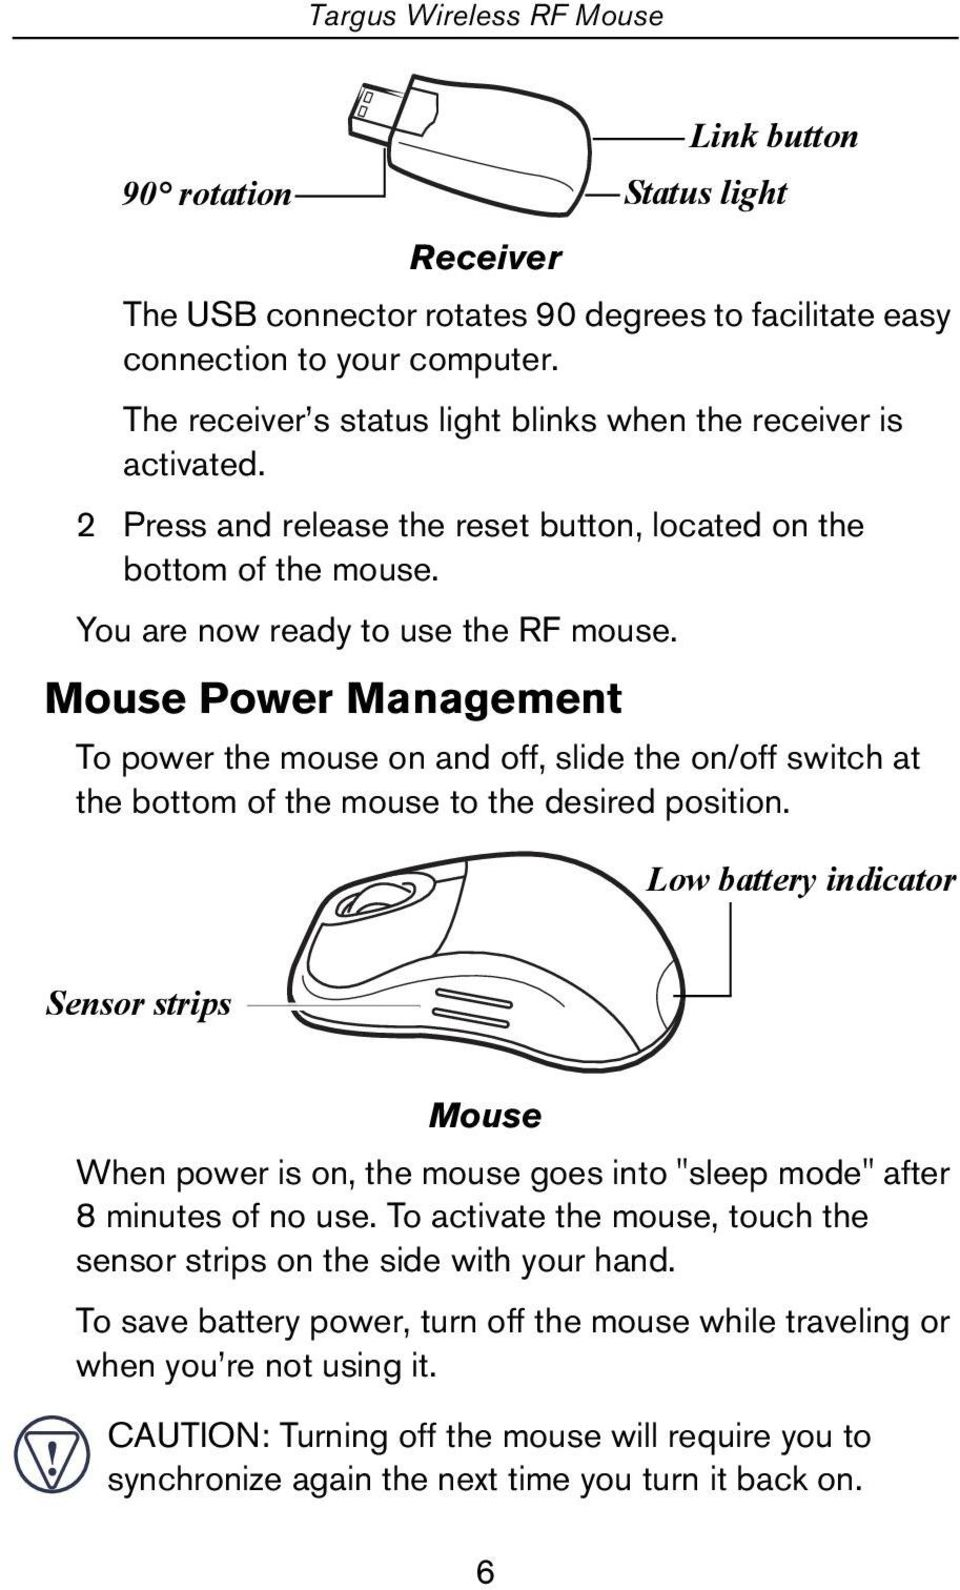 Mouse Power Management To power the mouse on and off, slide the on/off switch at the bottom of the mouse to the desired position.